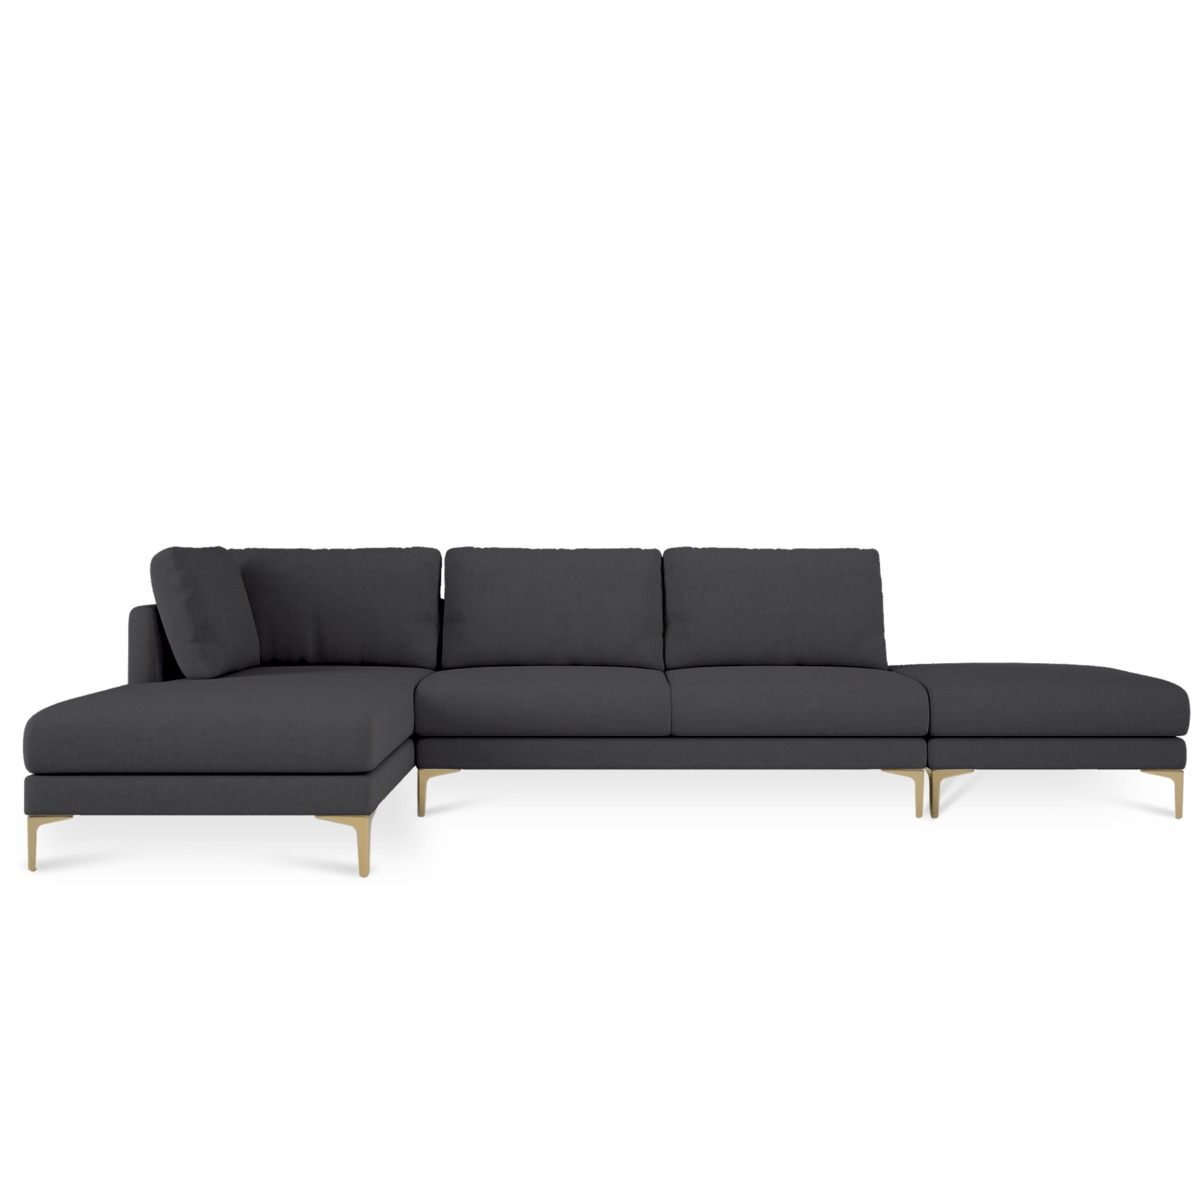 Castlery Sofas Best Price In Australia Buy With